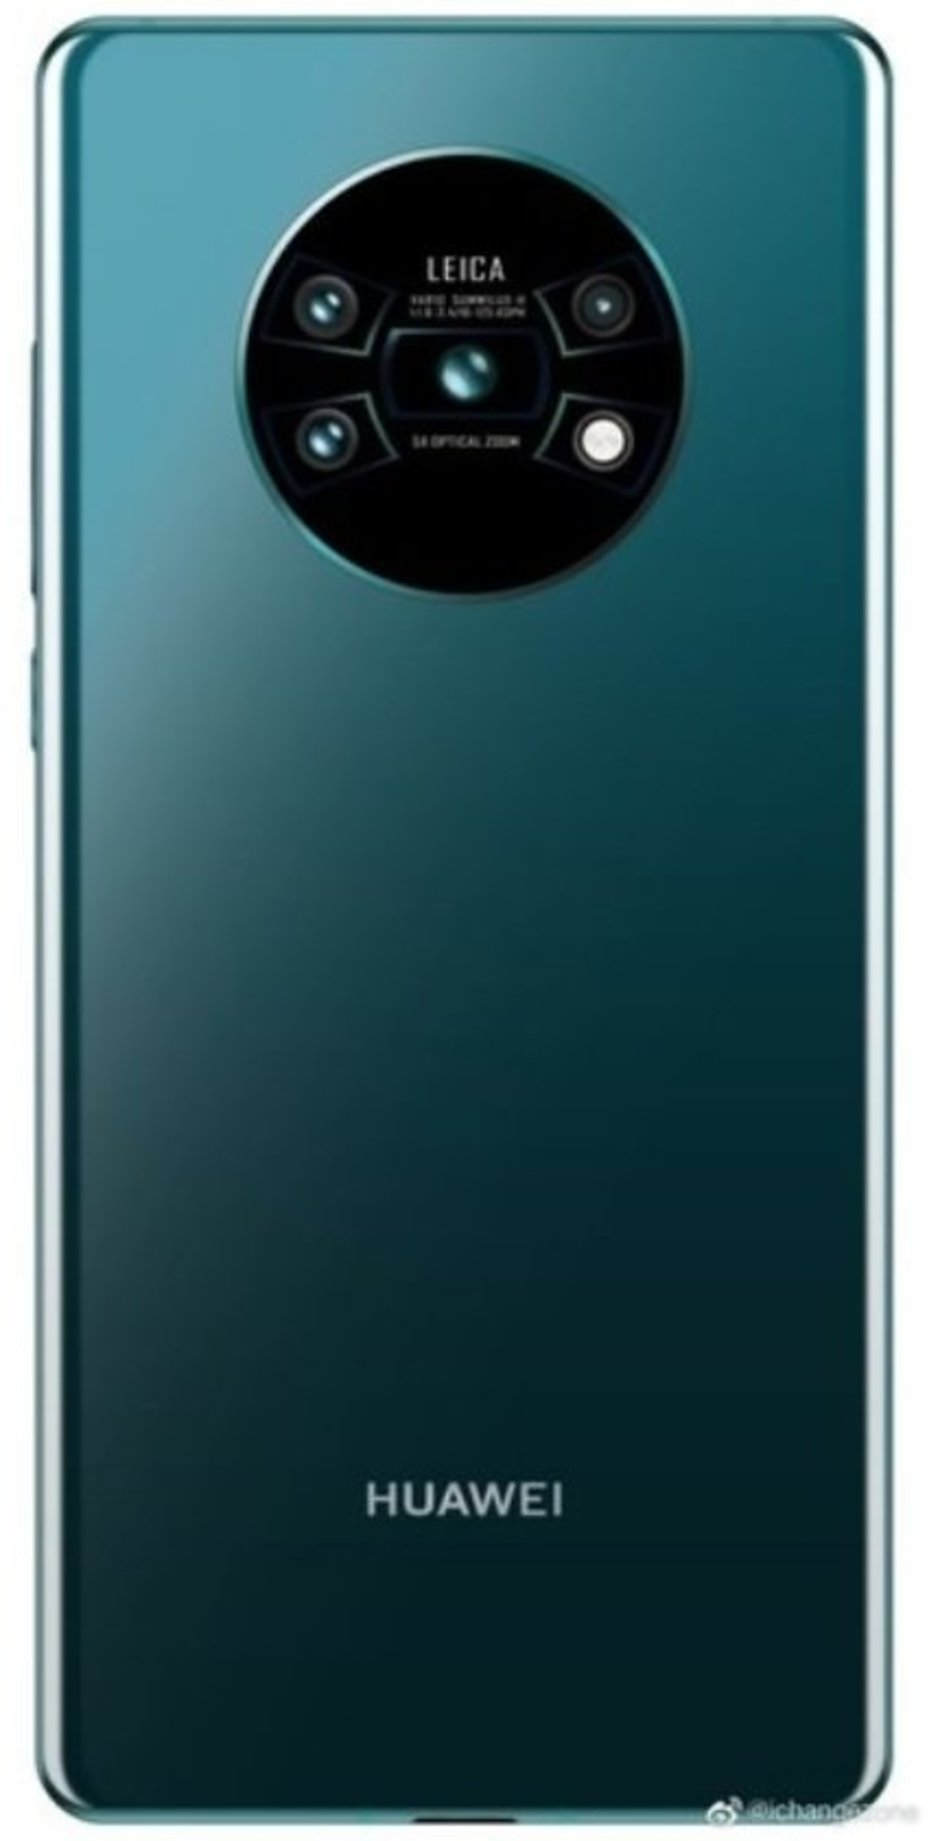 Render allegedly showing the rear panel of the Huawei Mate 30 Pro